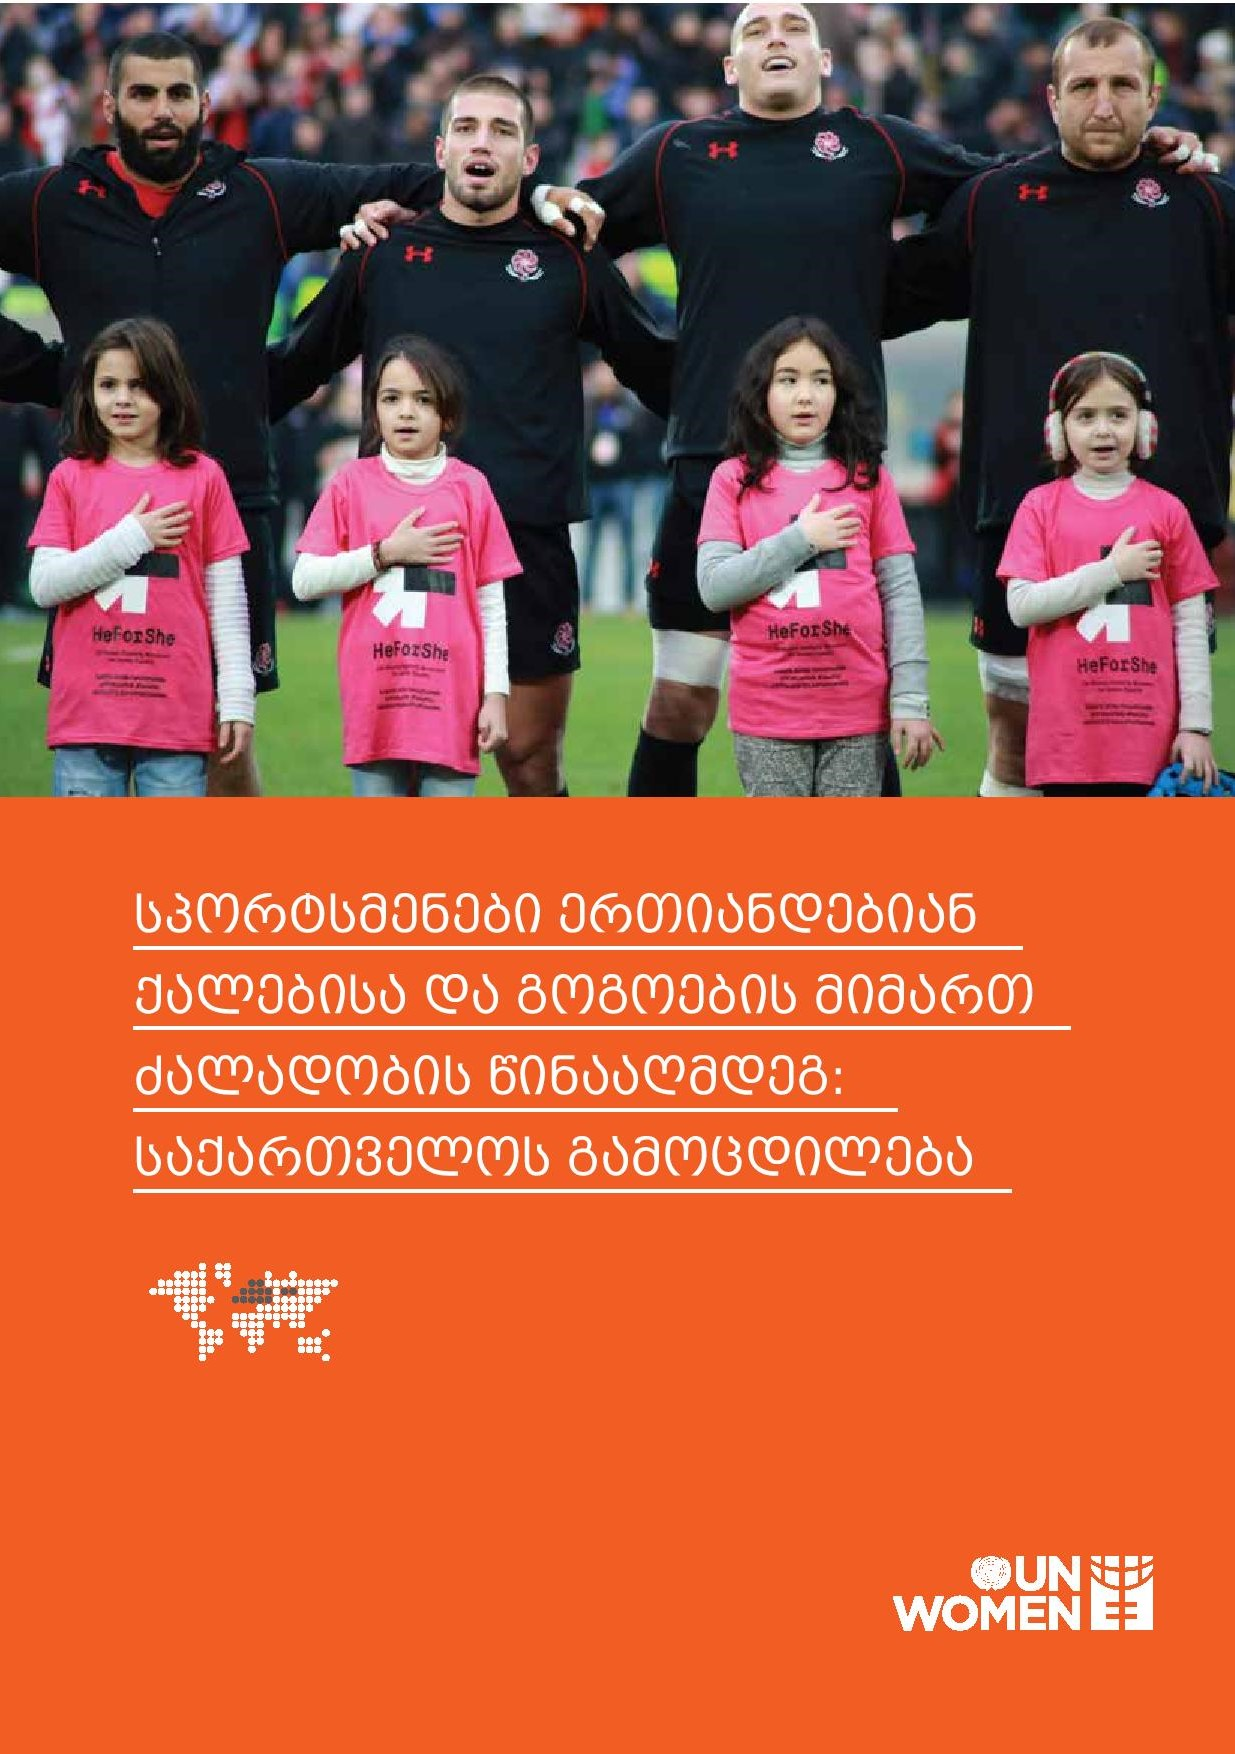 Sports united to And Violence Sgainst Women and Girls